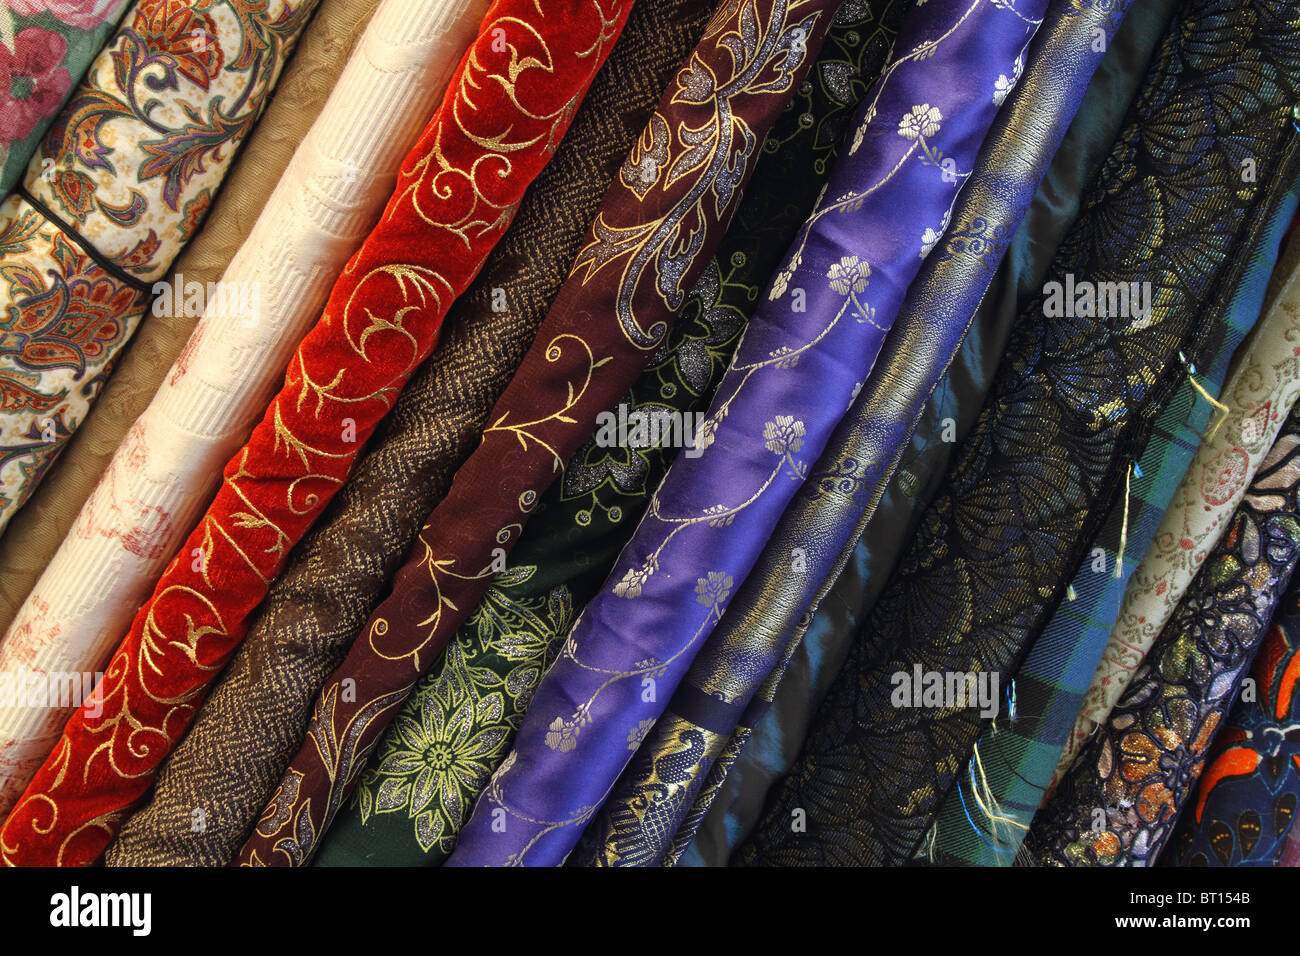 Colorful and elegant bolts of velvet and silk fabric cloth in seamstress shop - Stock Image